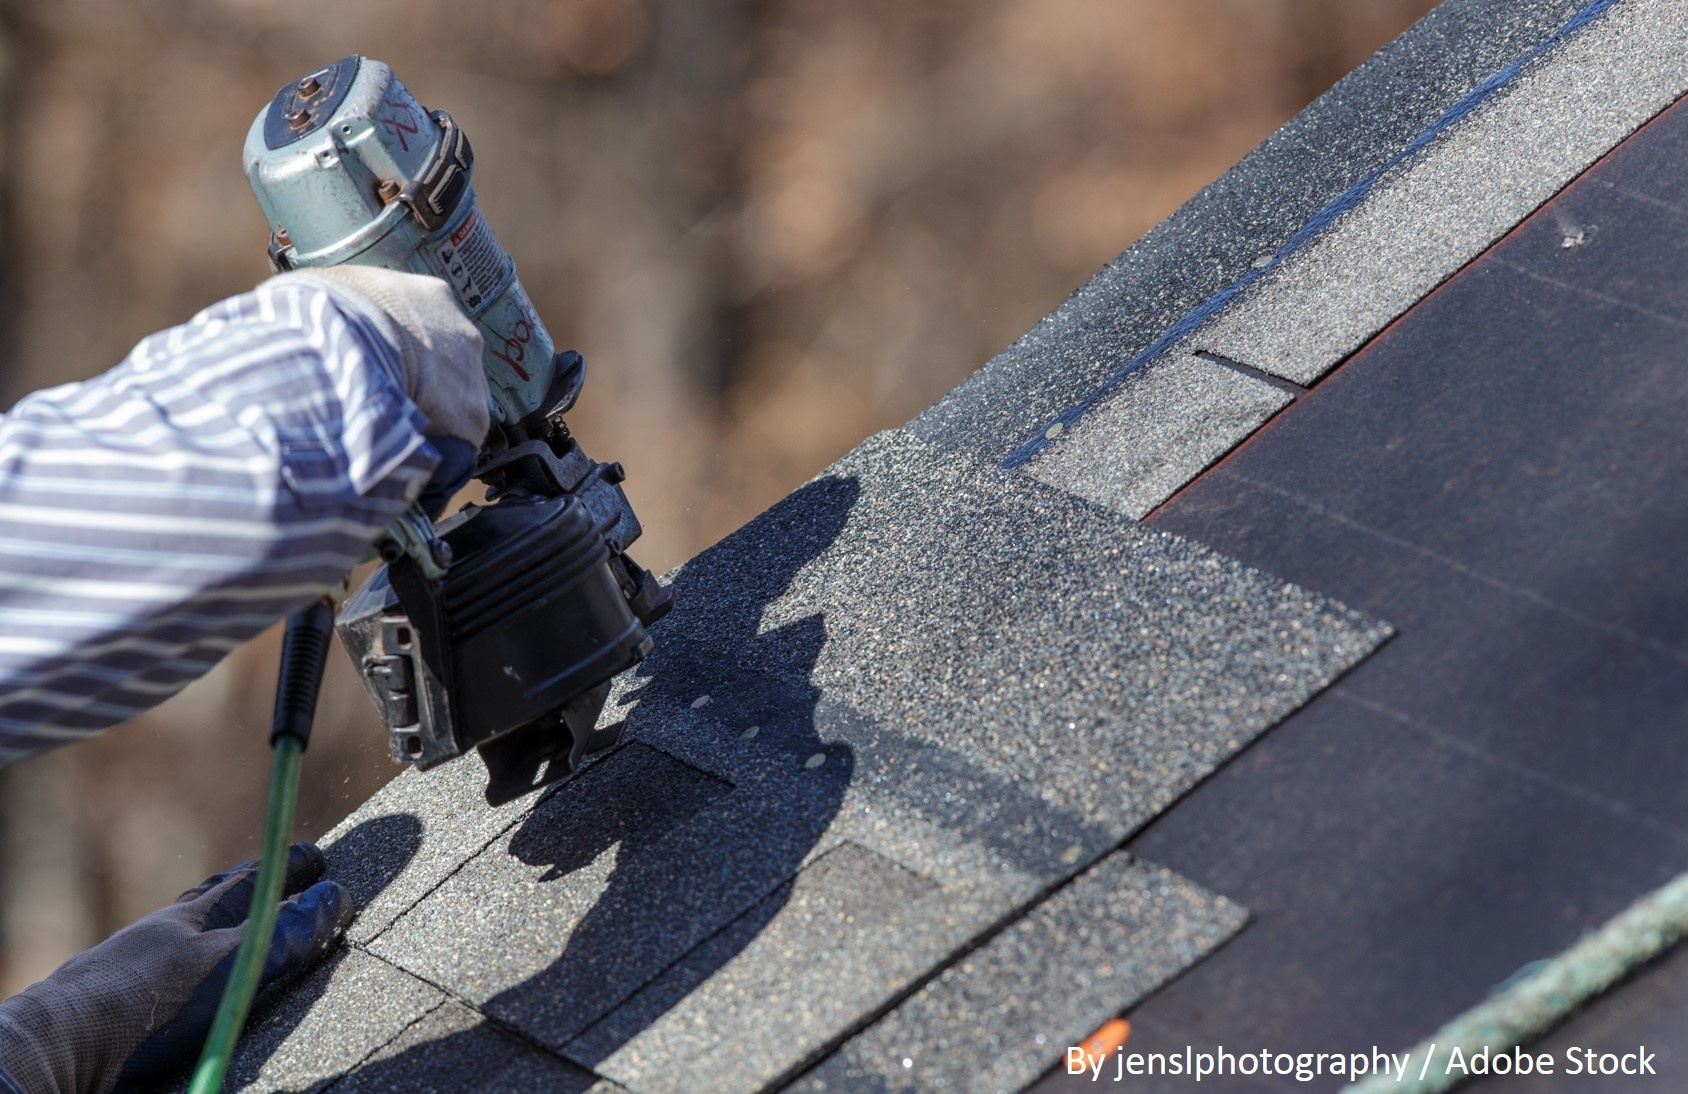 RoofRepair-1-039816-edited.jpg